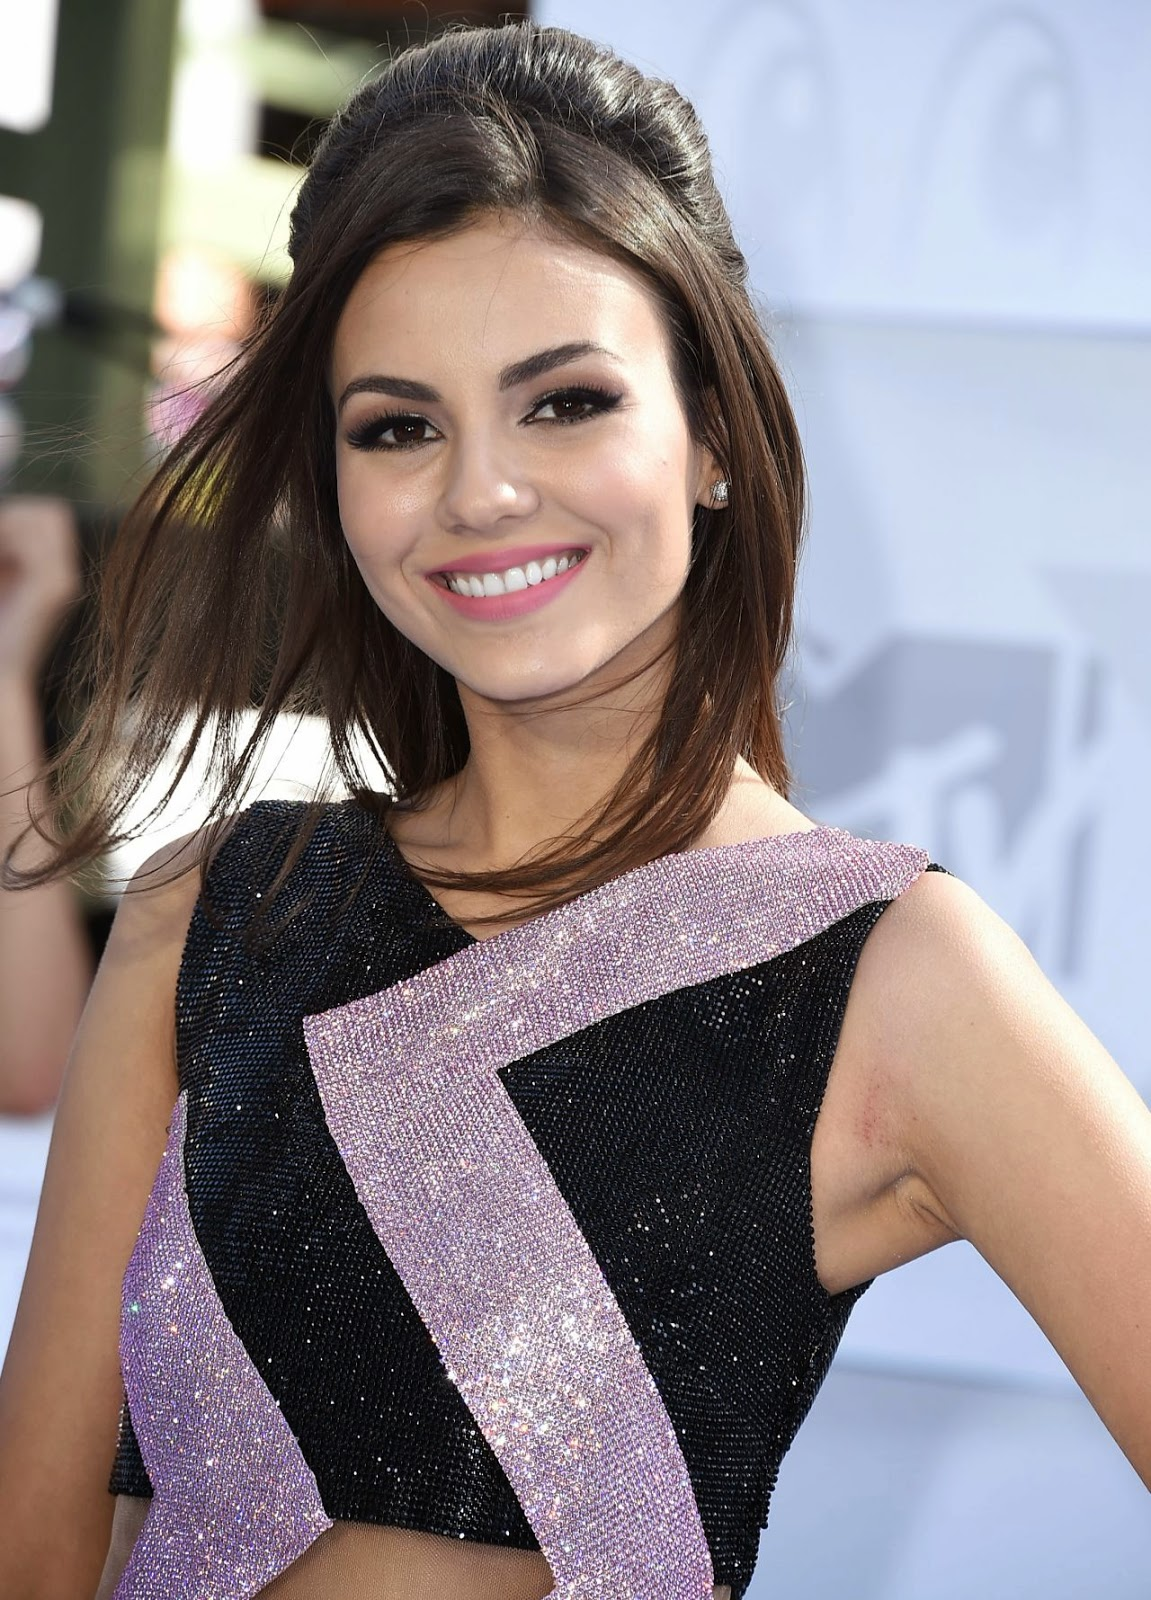 Victoria Justice flaunts a shimmery Versace cocktail mini dress at the 2015 MTV Music Awards